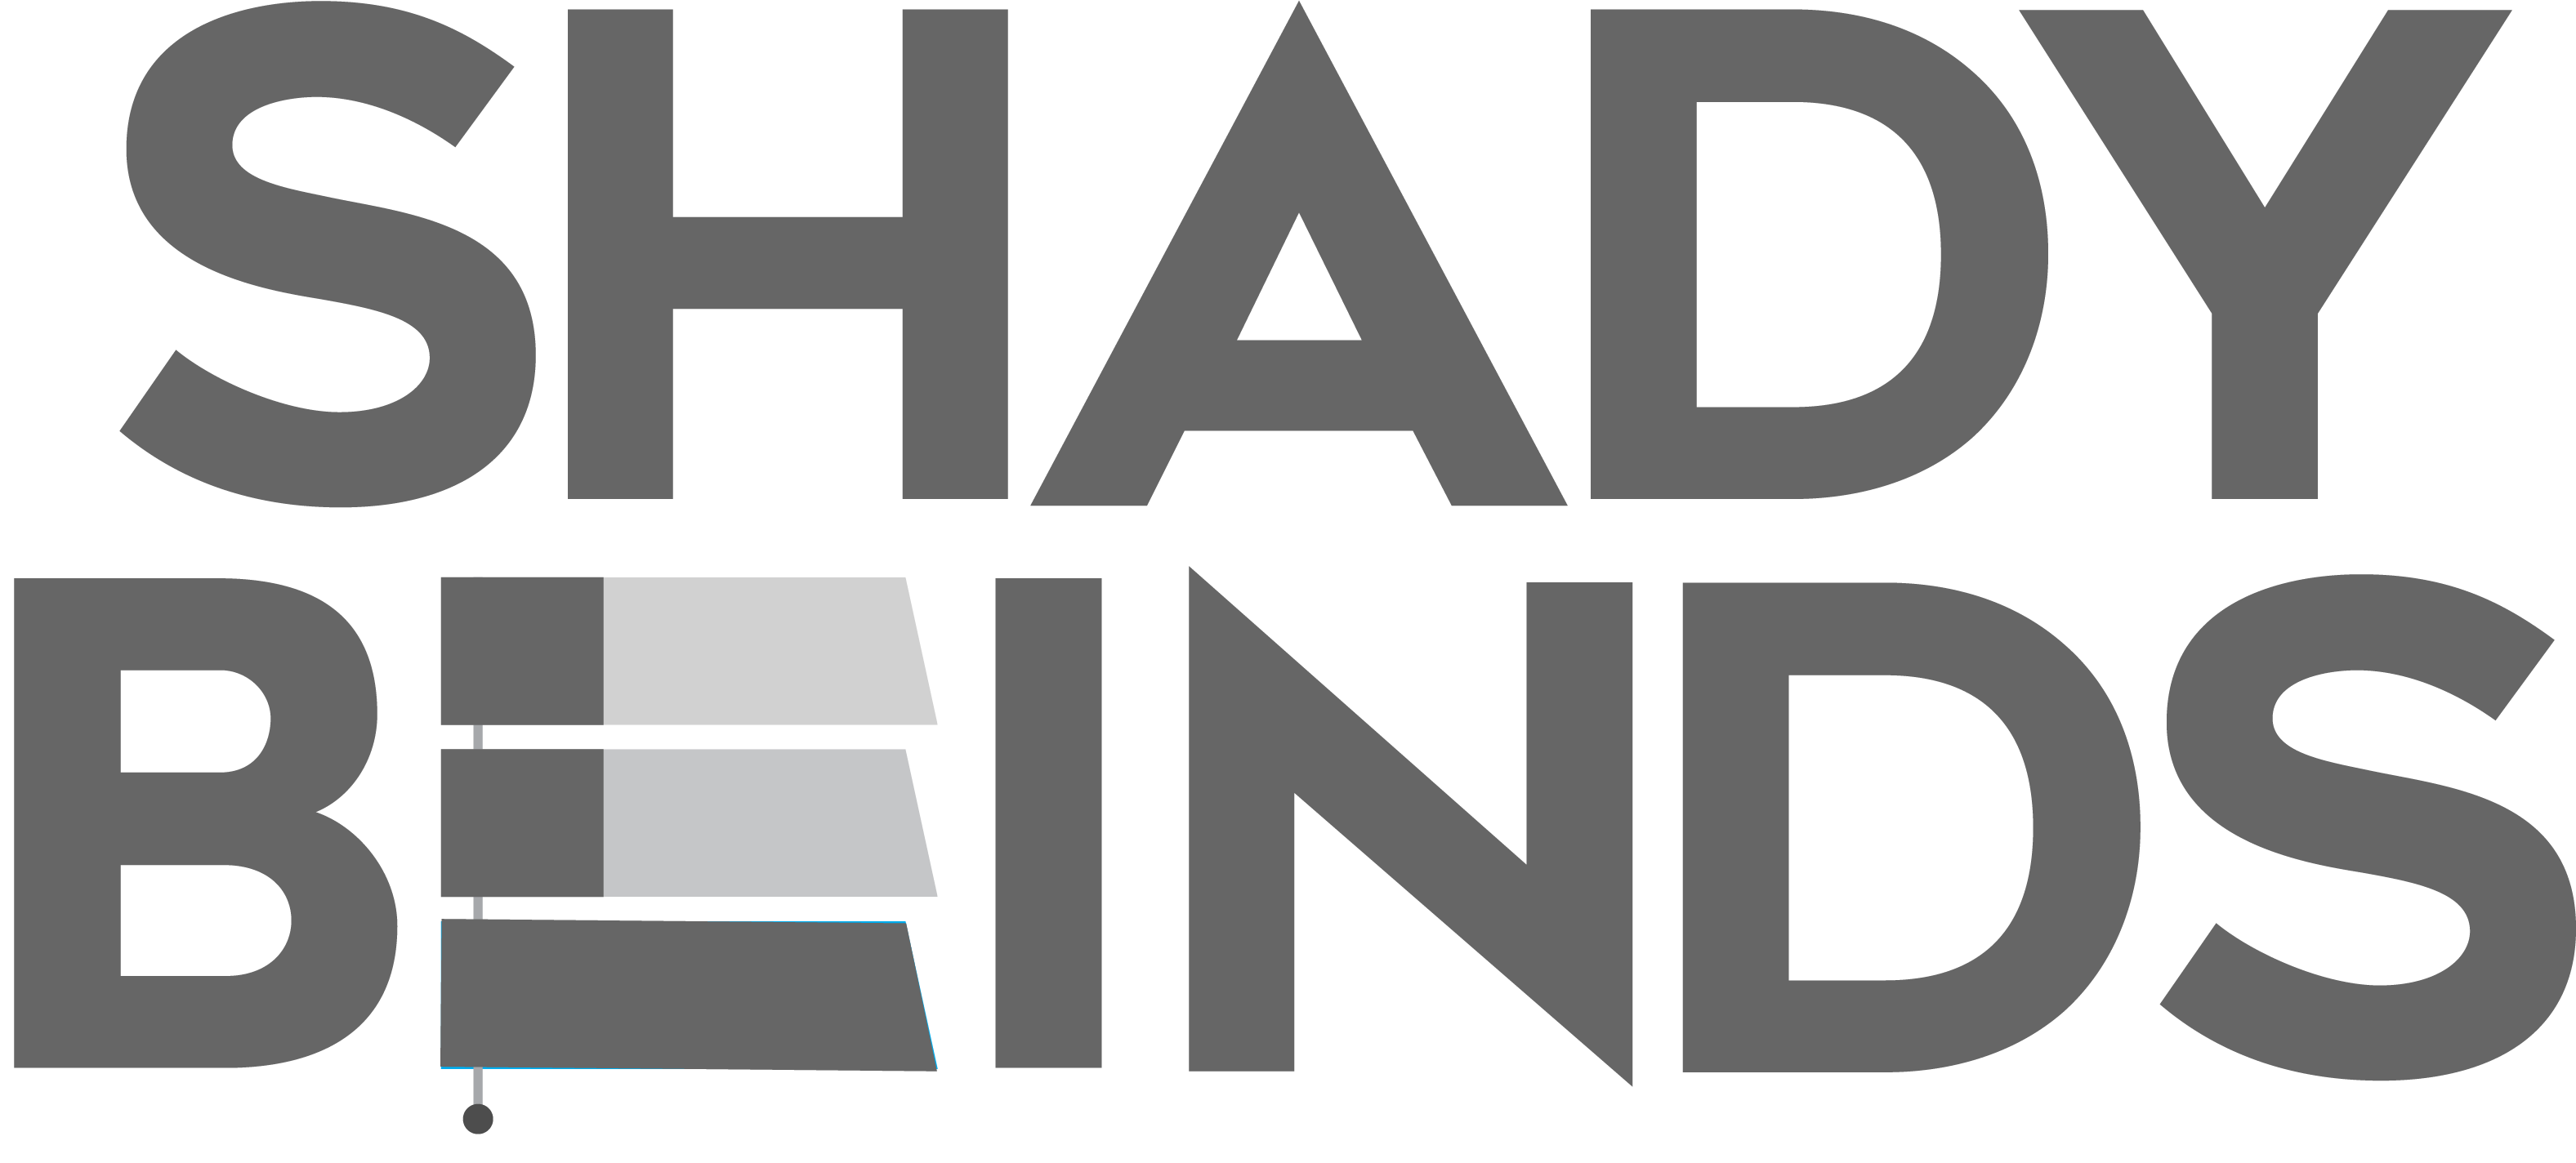 Shady blinds ltd Verified Logo